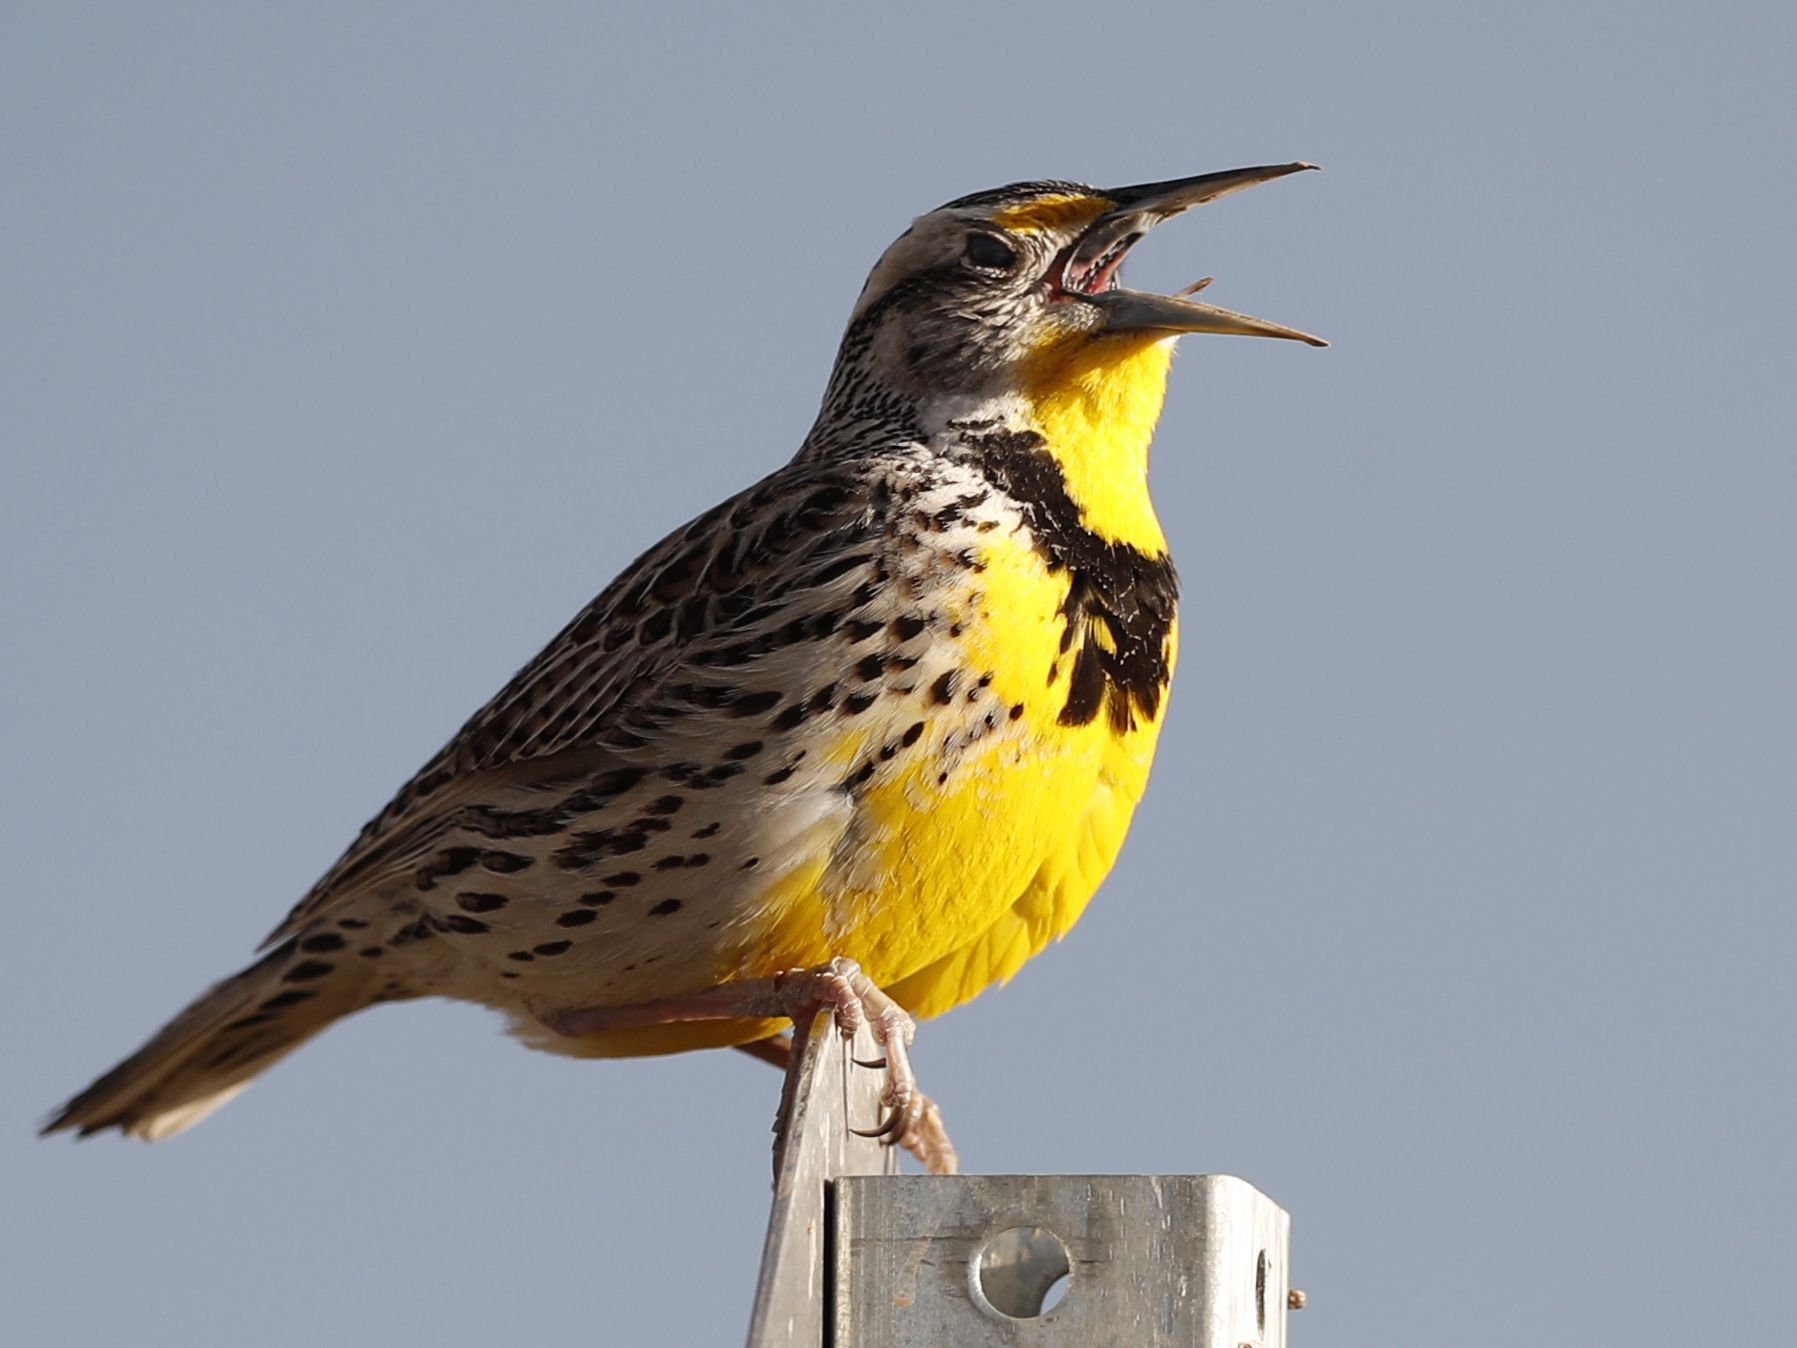 Where have the wild birds gone? 3 billion fewer than 1970